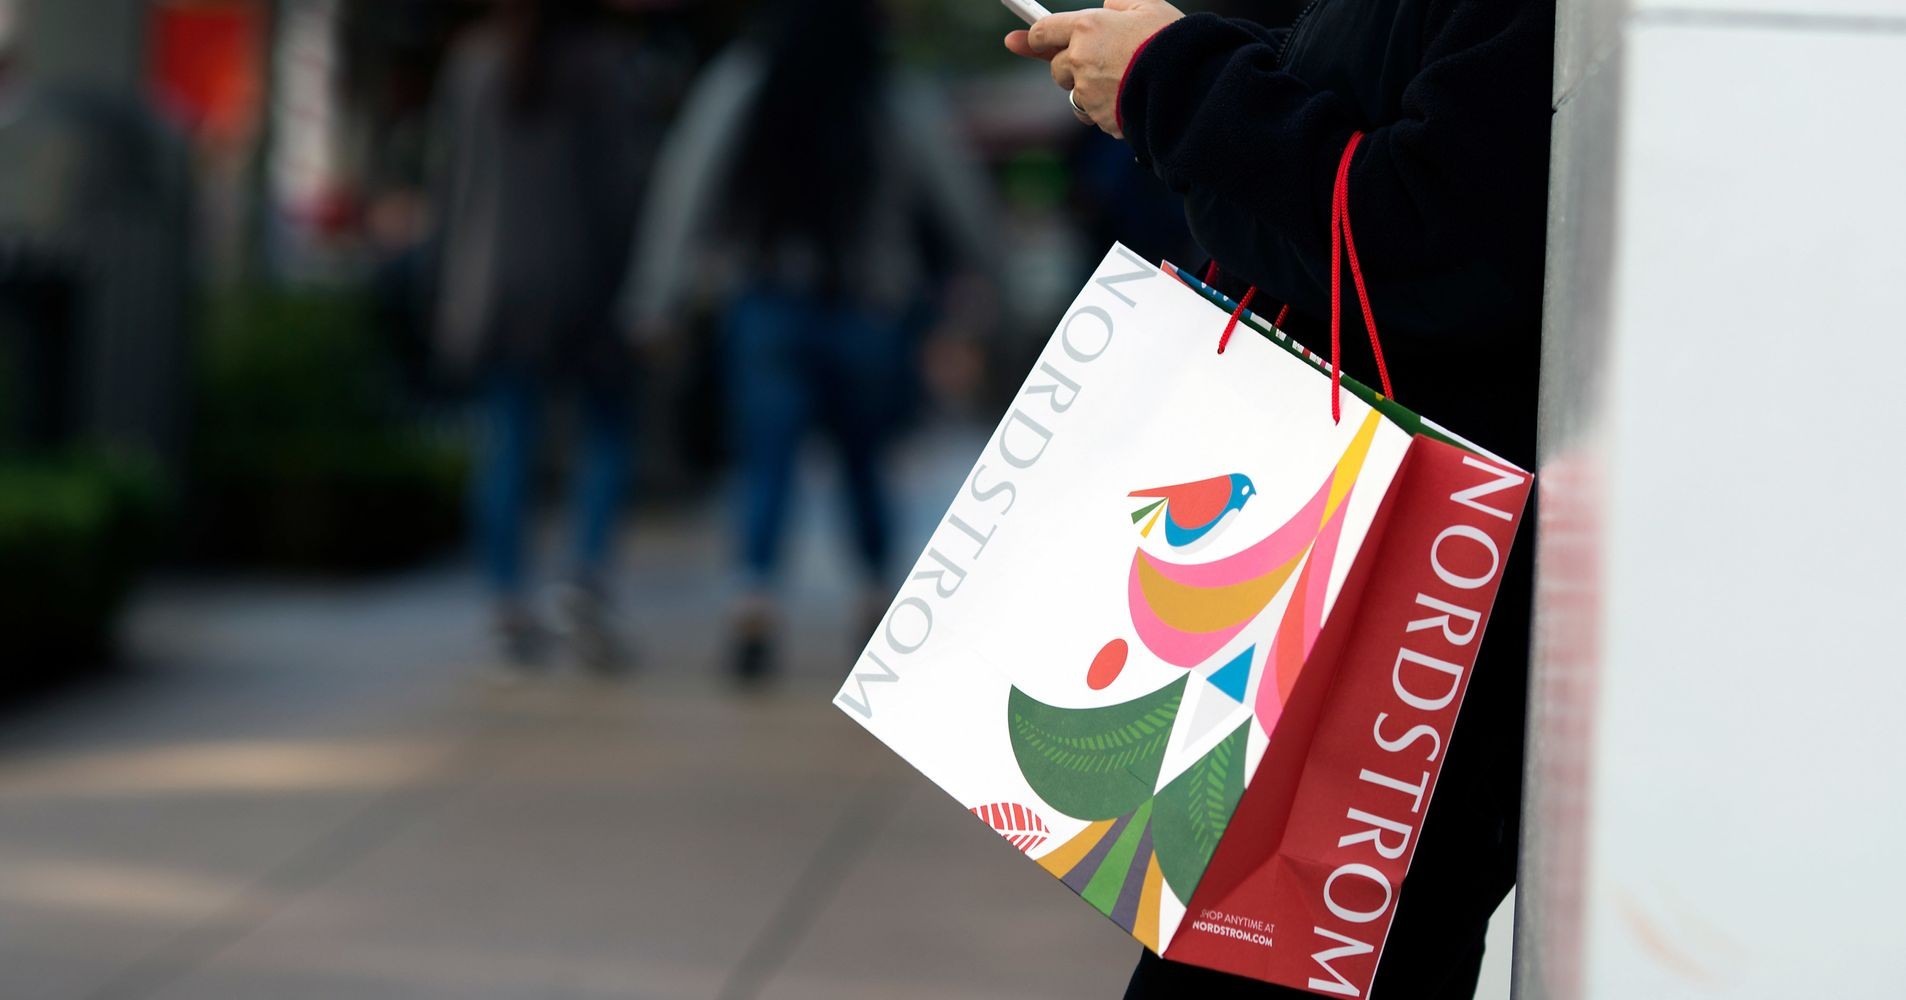 fbb5105890c huffingtonpost.com. What To Get At Nordstrom s Half-Yearly Sale ...